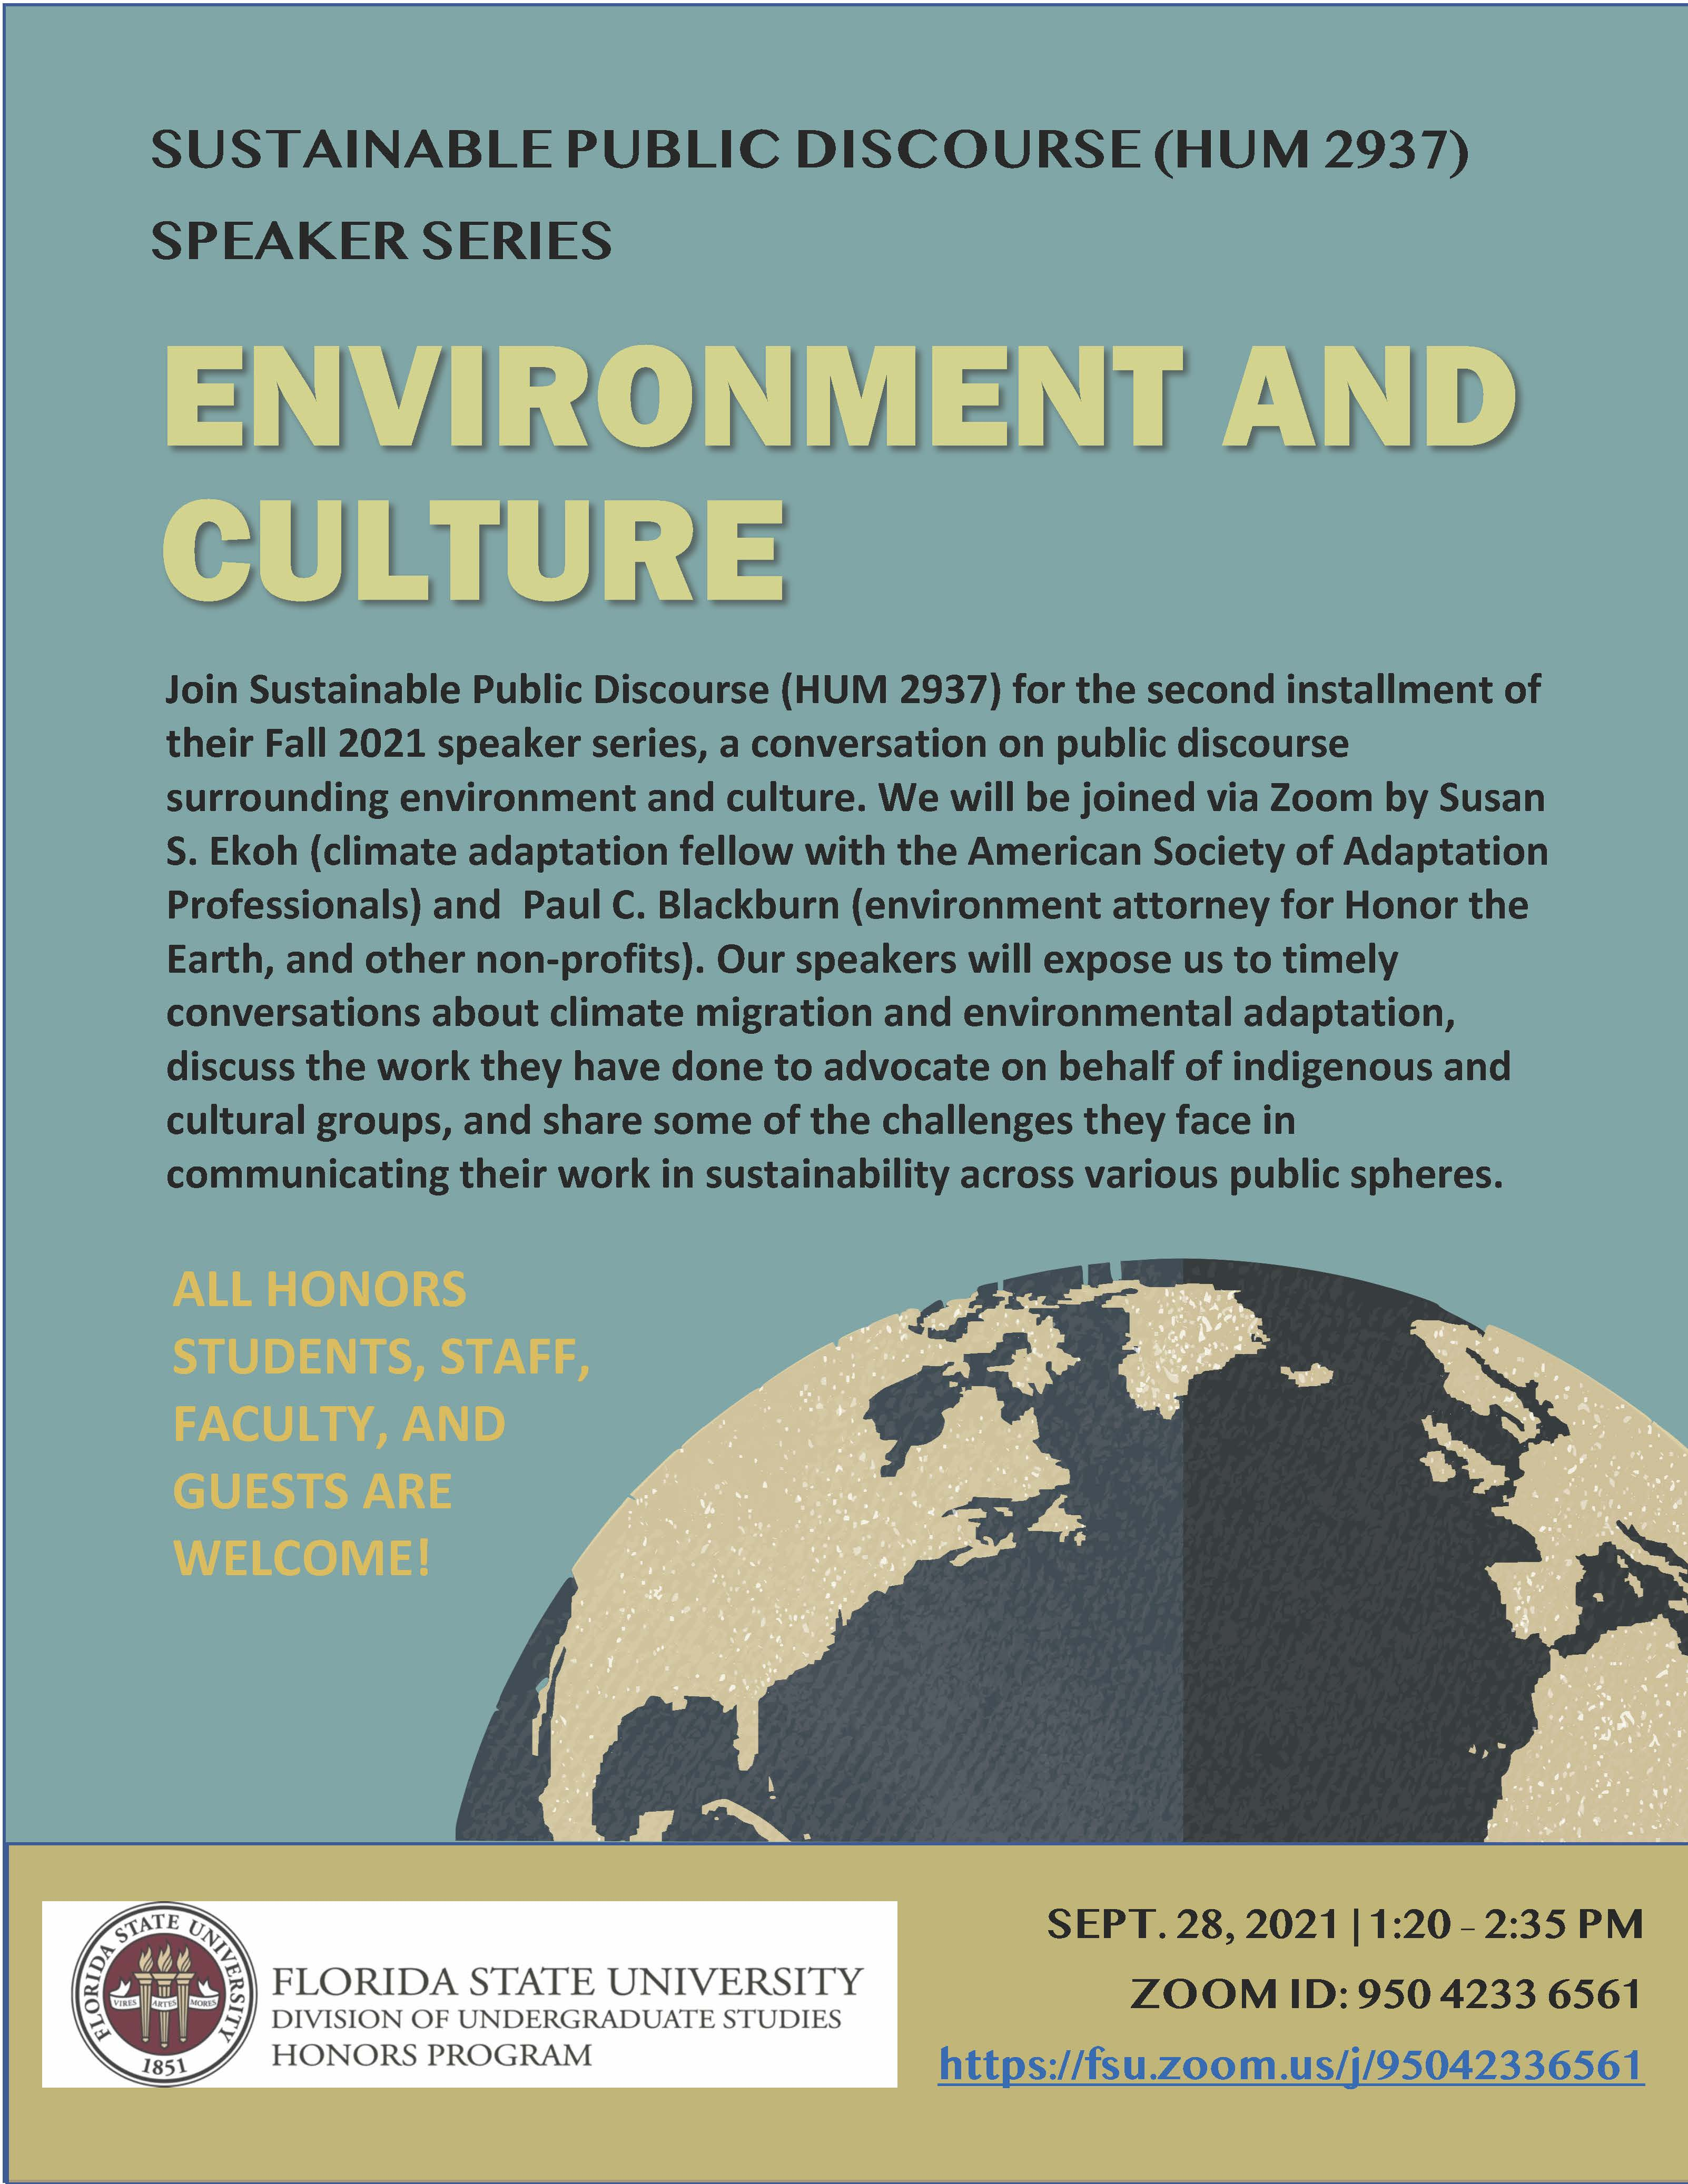 Join Sustainable Public Discourse (HUM 2937) for the second installment of their Fall 2021 speaker series, a conversation on public discourse surrounding environment and culture. We will be joined via Zoom by Susan S. Ekoh (climate adaptation fellow with the American Society of Adaptation Professionals) and Paul C. Blackburn (environment attorney for Honor the Earth, and other non-profits). Our speakers will expose us to timely conversations about climate migration and environmental adaptation, discuss the work they have done to advocate on behalf of indigenous and cultural groups, and share some of the challenges they face in communicating their work in sustainability across various public spheres.